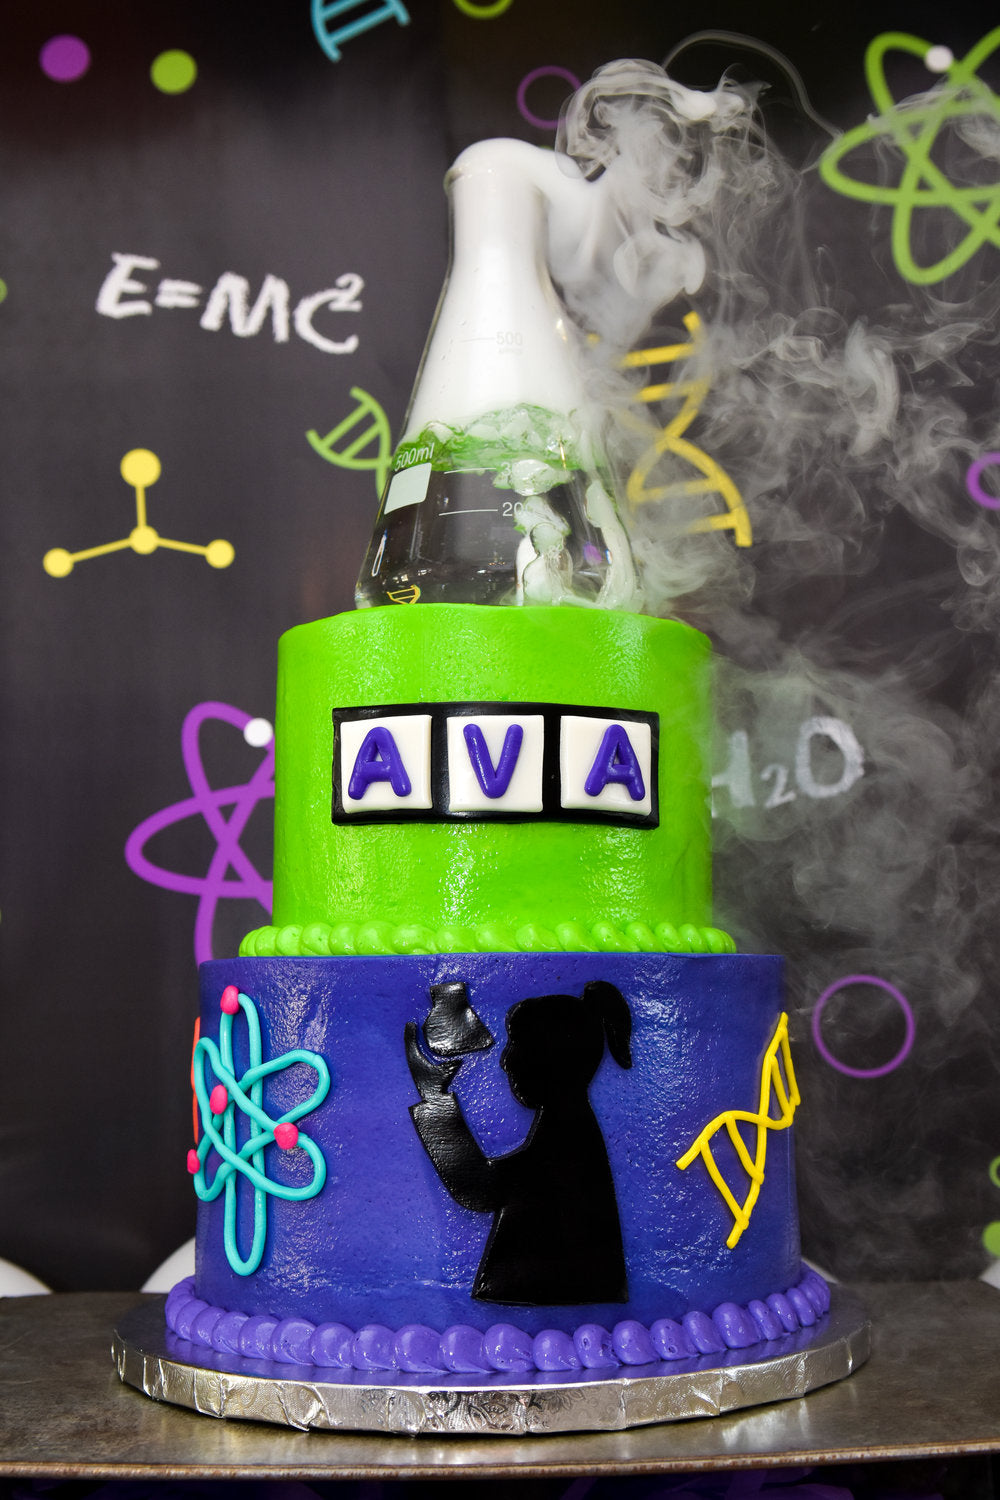 Closeup of purple & green birthday cake with smoking flask cake topper